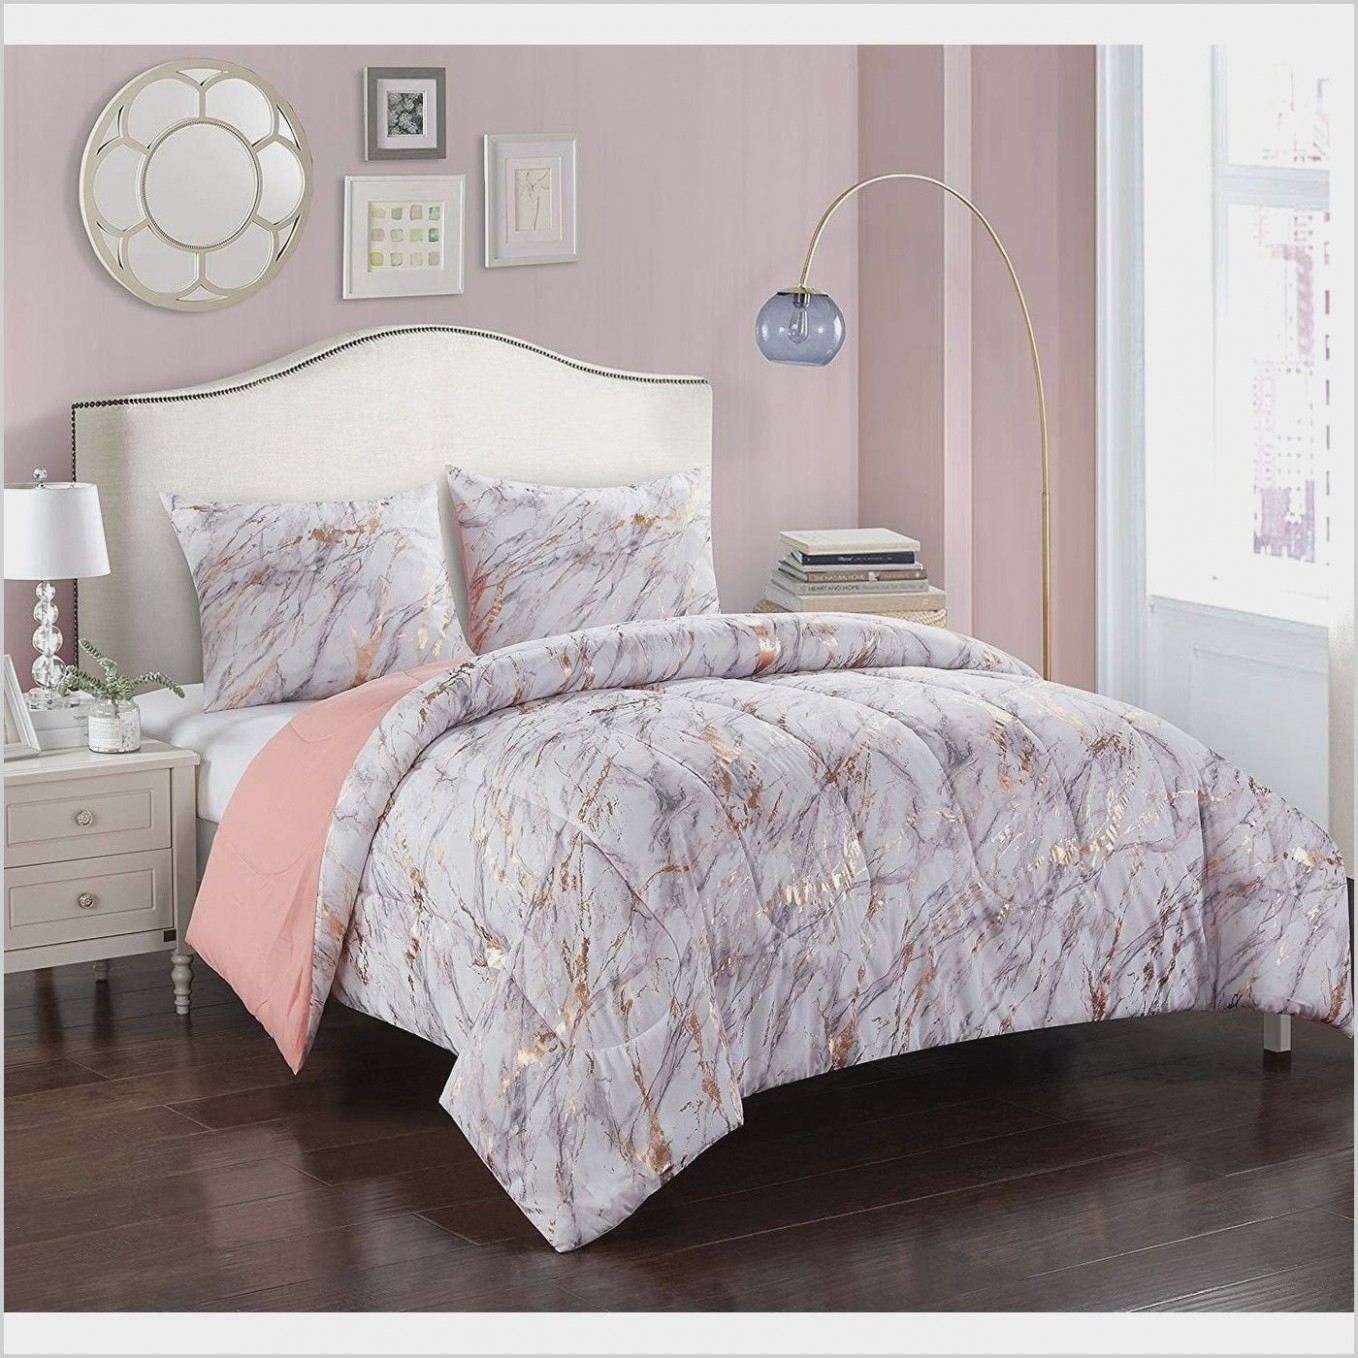 Marble and Rose Gold Bedroom Ideas in 10  Rose gold bedroom  - Bedroom Ideas Rose Gold And Grey